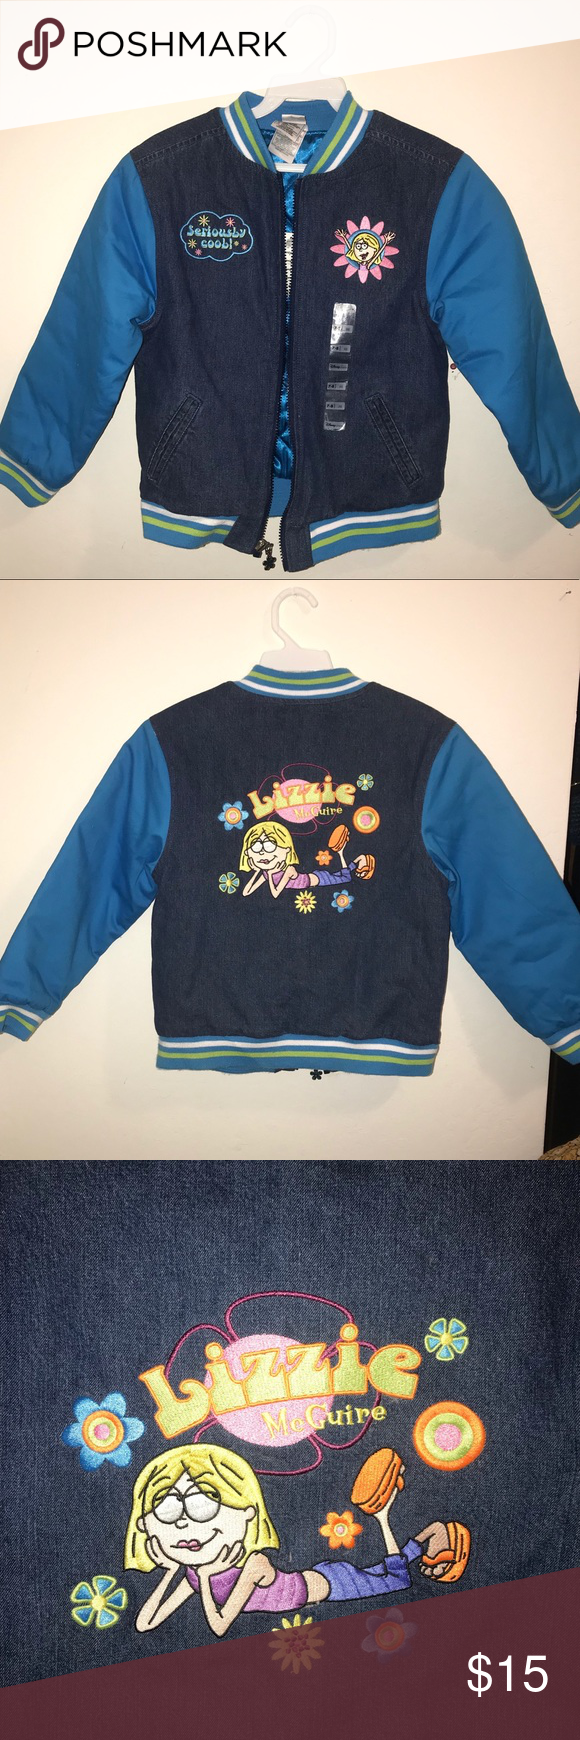 NWT! Lizzie McGuire Quilted Jean Jacket - NWT!  - Lizzie McGuire / Hilary Duff themed embroidery - Purchased from the Disney Store Disney Jackets & Coats Jean Jackets #lizziemcguire NWT! Lizzie McGuire Quilted Jean Jacket - NWT!  - Lizzie McGuire / Hilary Duff themed embroidery - Purchased from the Disney Store Disney Jackets & Coats Jean Jackets #lizziemcguire NWT! Lizzie McGuire Quilted Jean Jacket - NWT!  - Lizzie McGuire / Hilary Duff themed embroidery - Purchased from the Disney Store Disne #lizziemcguire